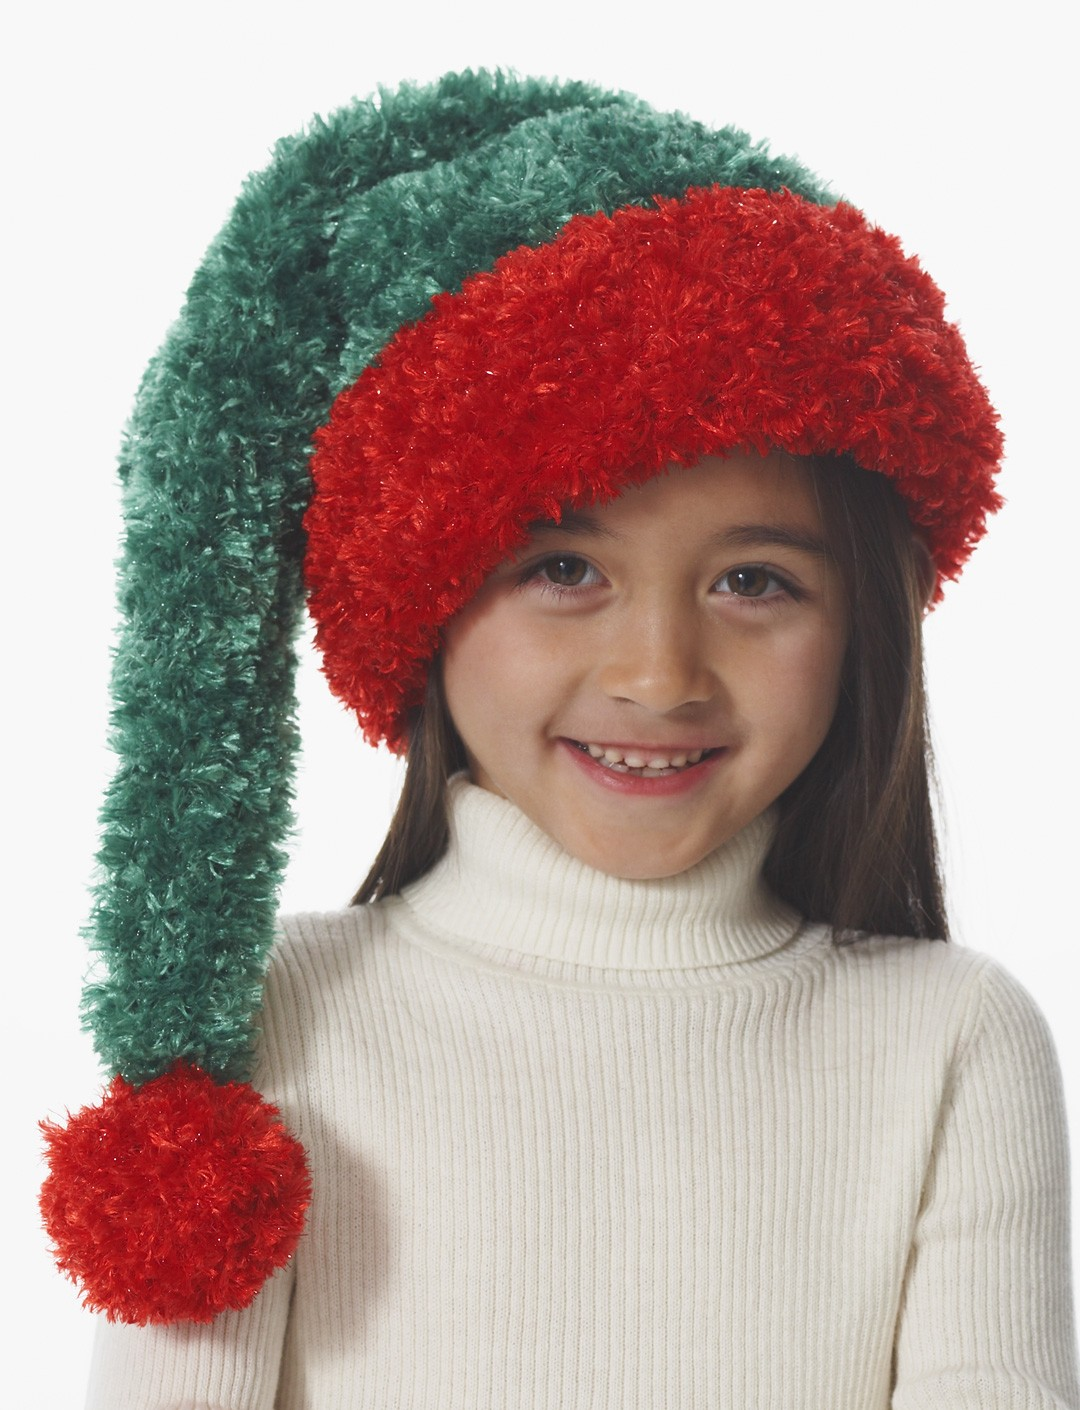 Bernat Child's Santa Hat, Knit Pattern | Yarnspirations